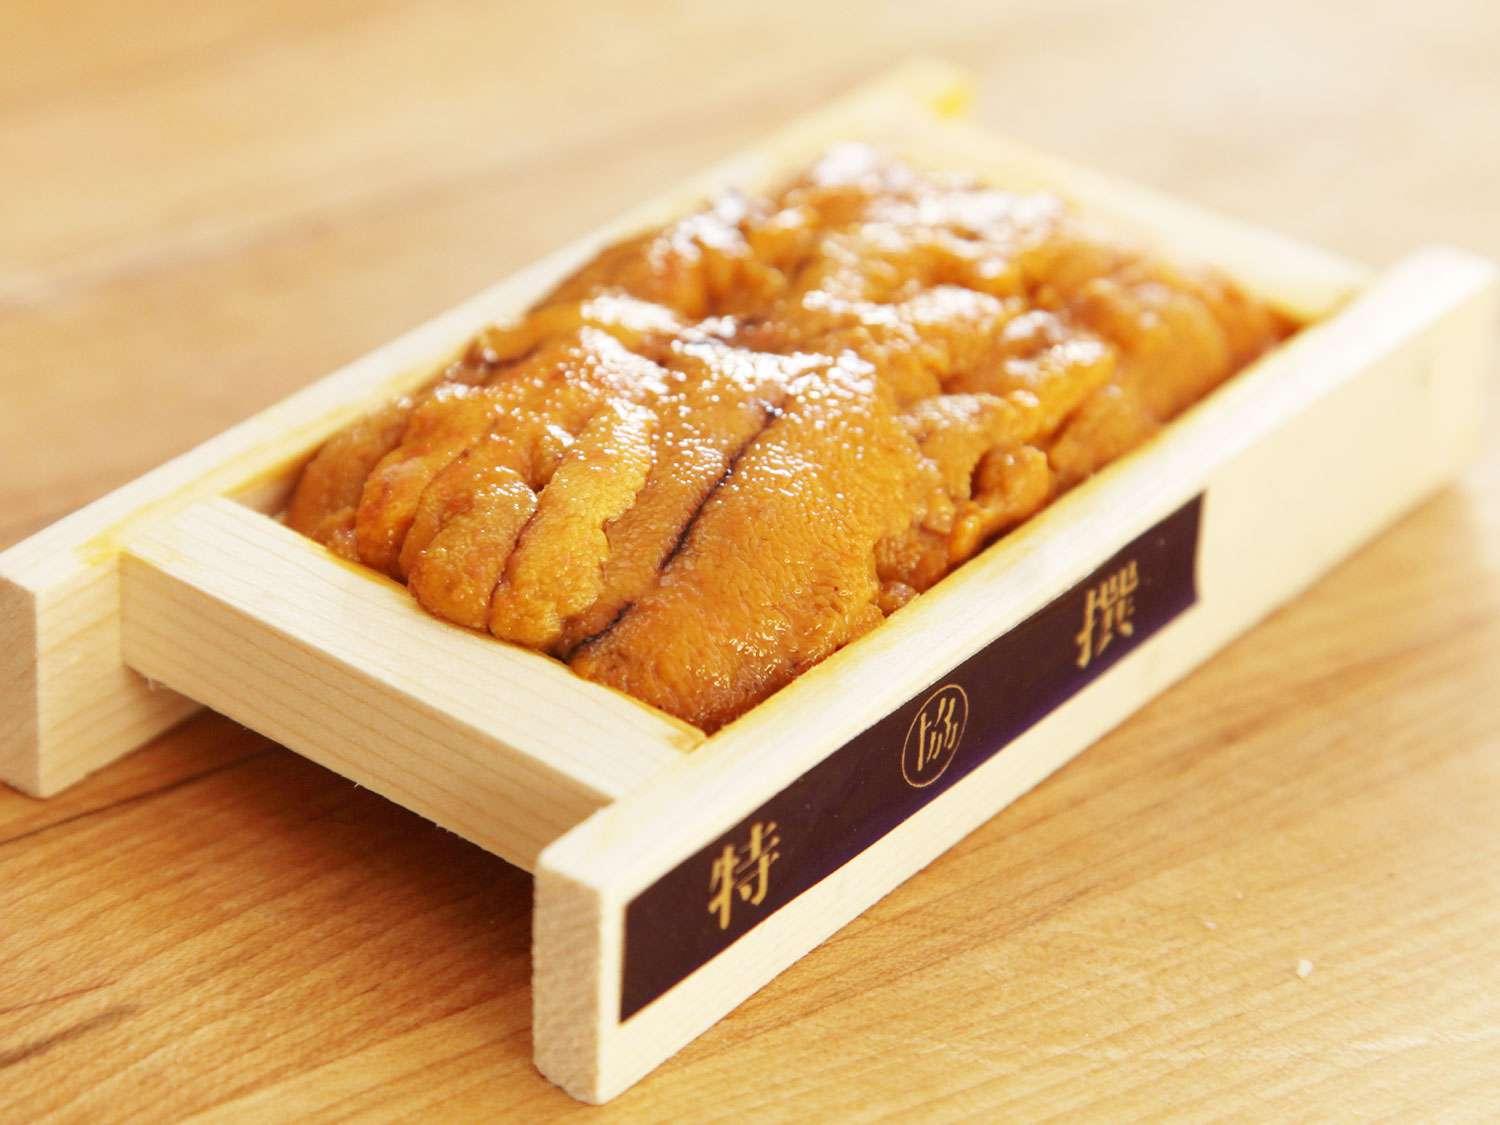 A wooden tray of fresh orange uni (sea urchin roe) on a wooden surface